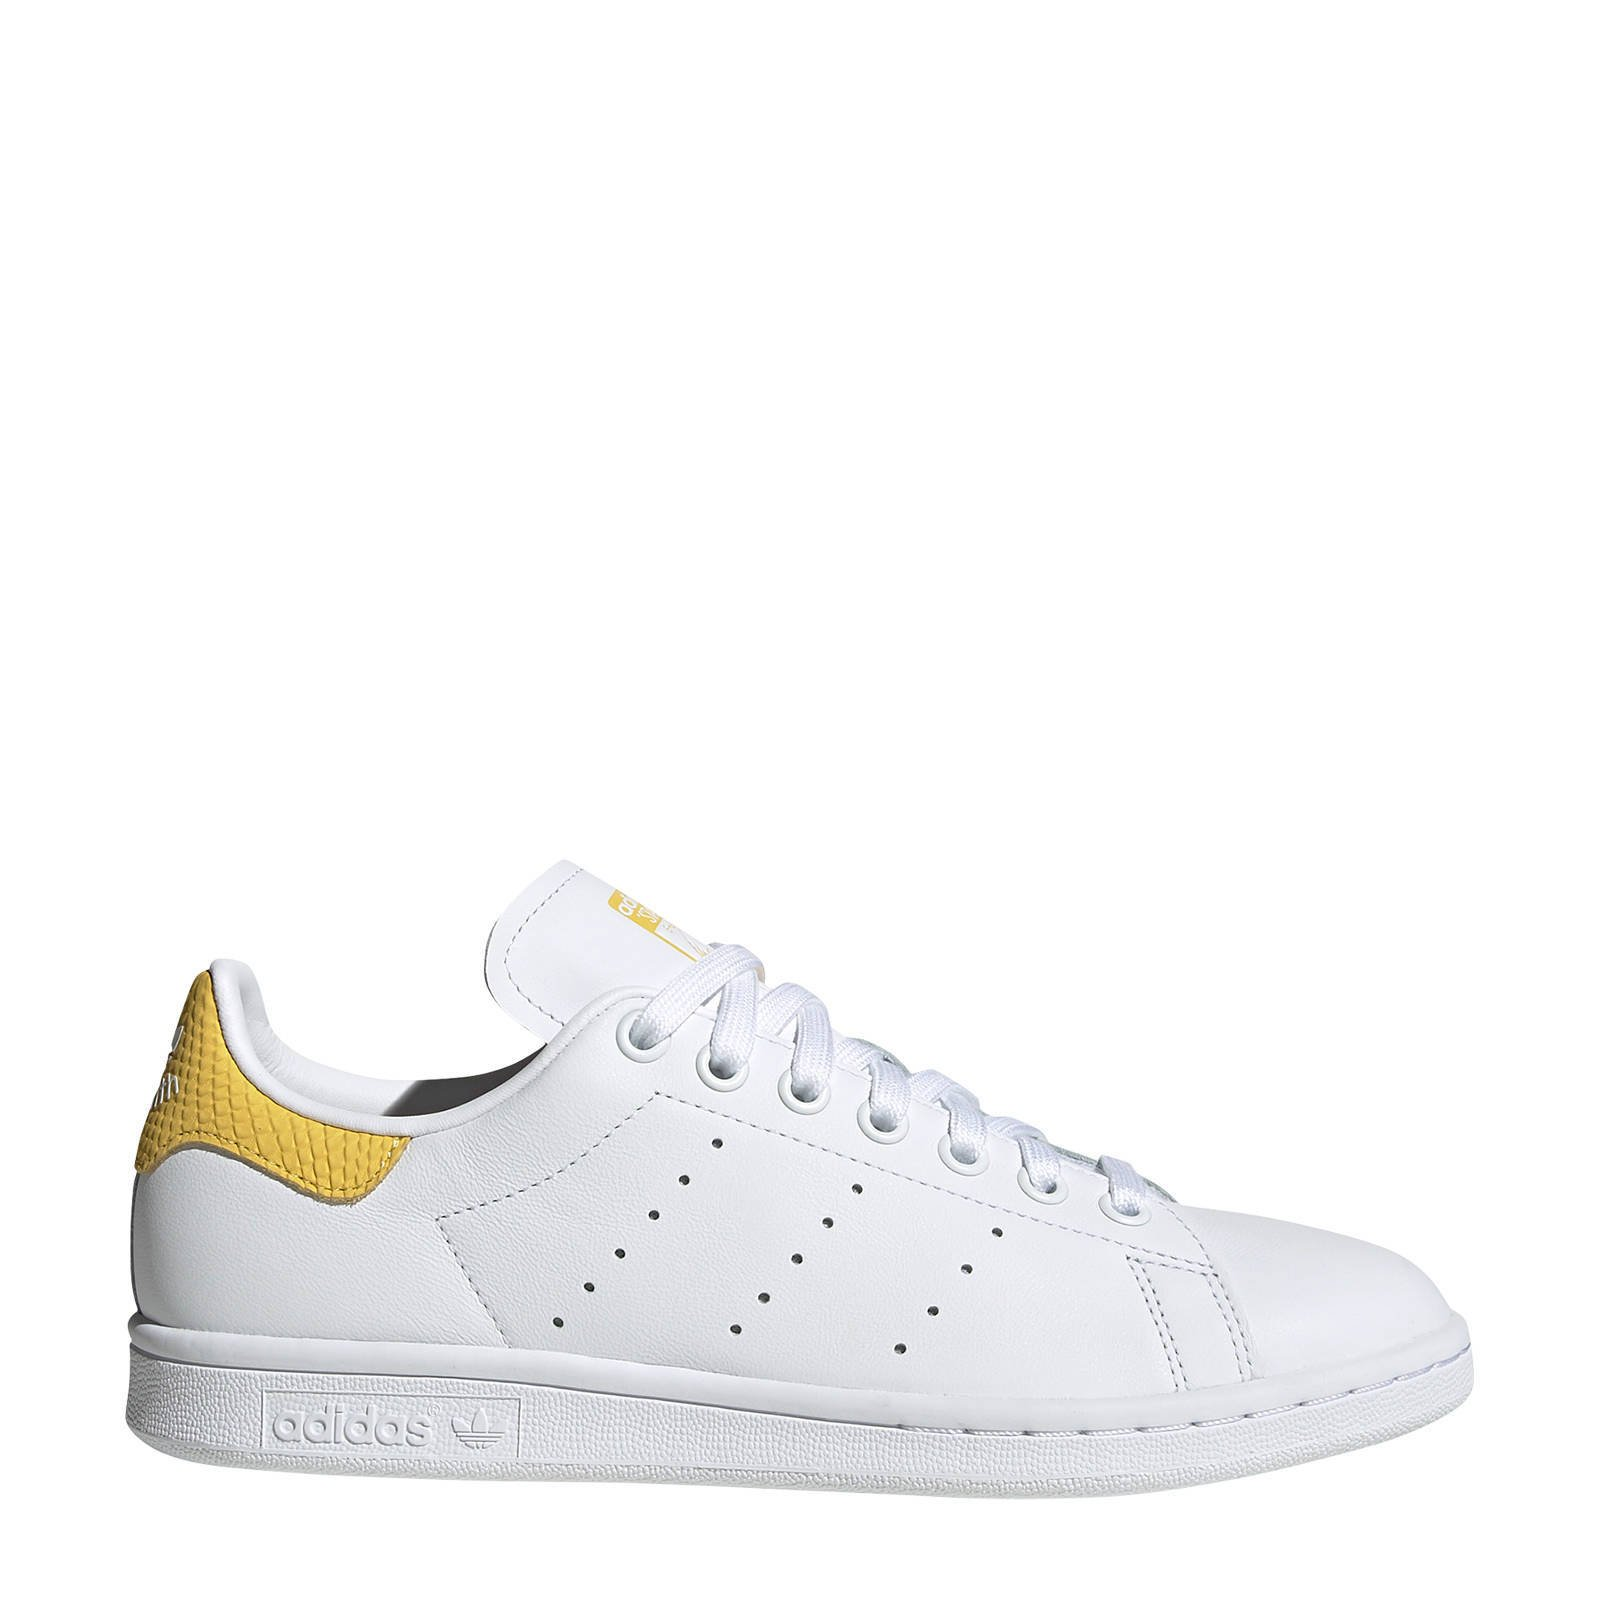 Stan Smith W sneakers wit/geel